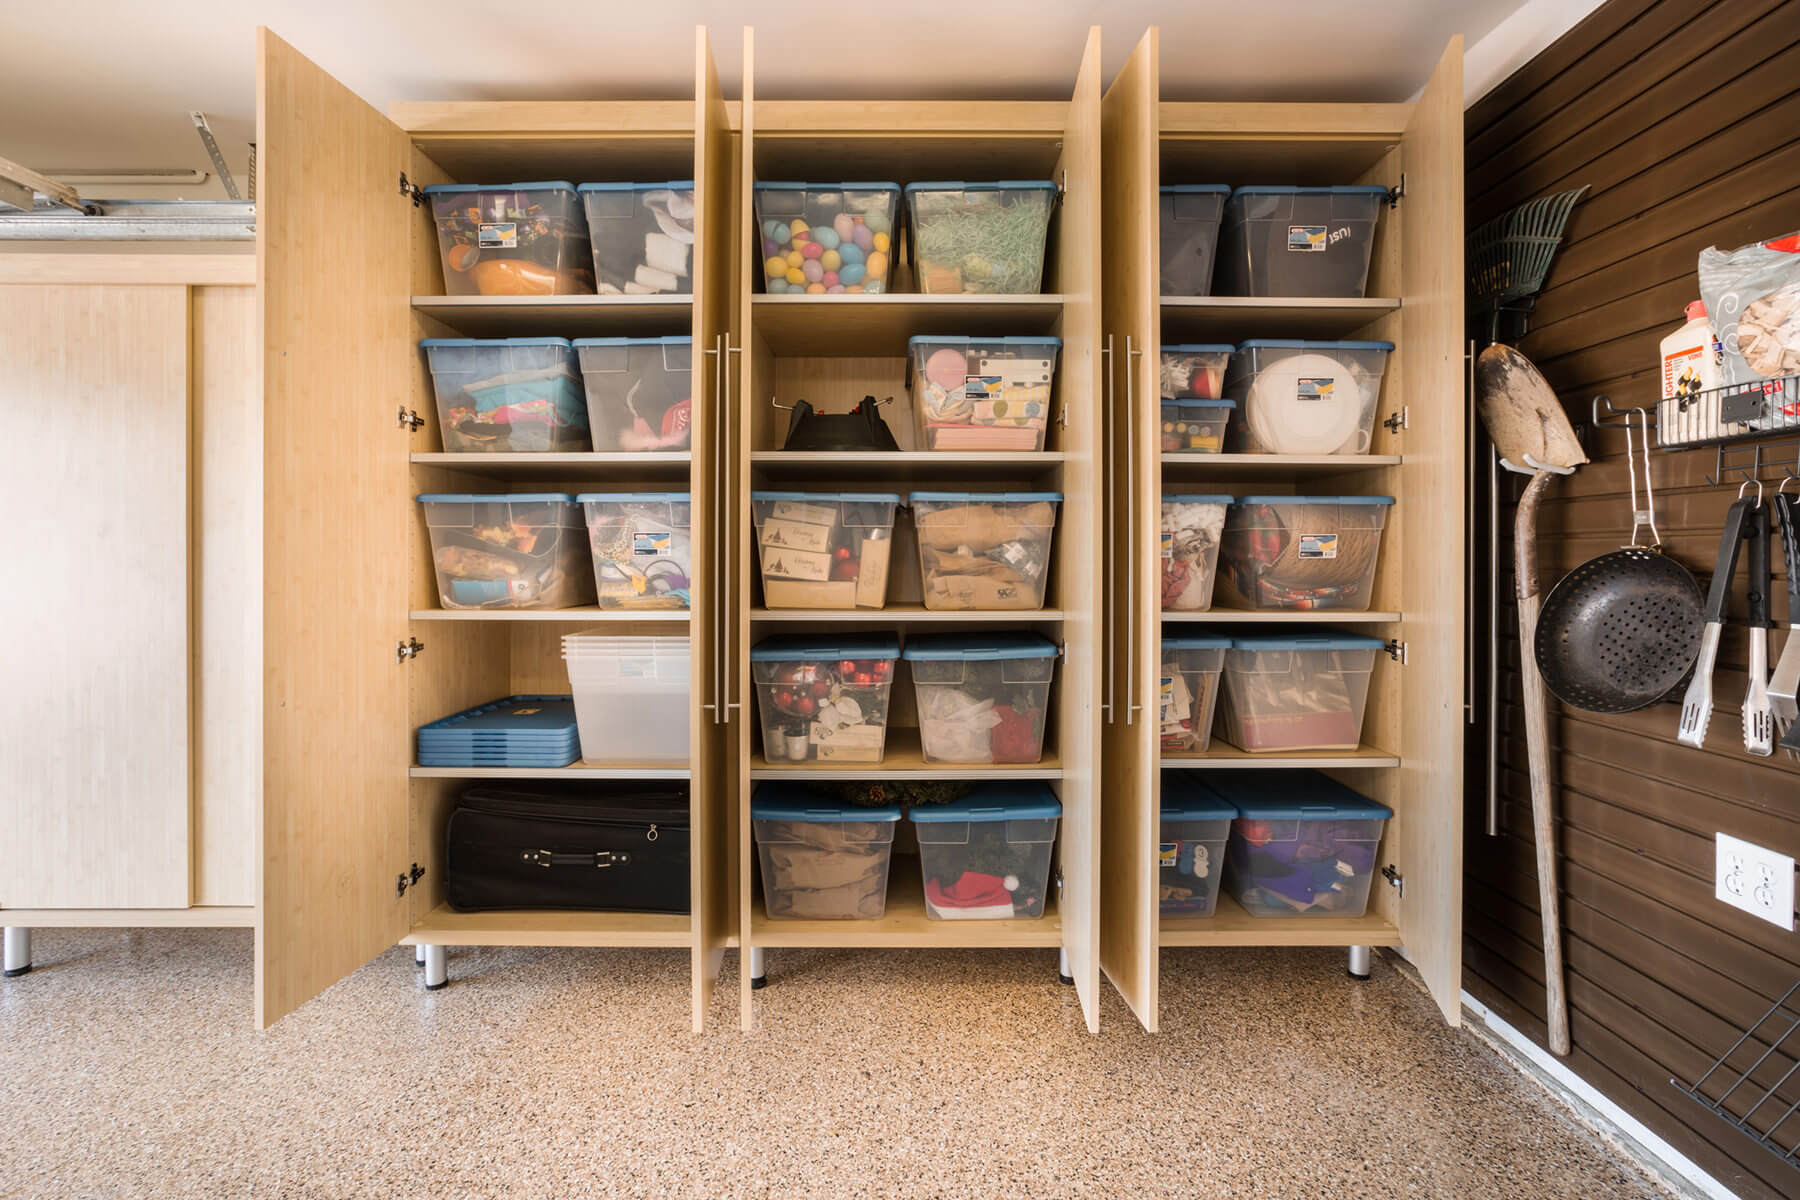 ideas for attic storage closet - 29 Garage Storage Ideas Plus 3 Garage Man Caves